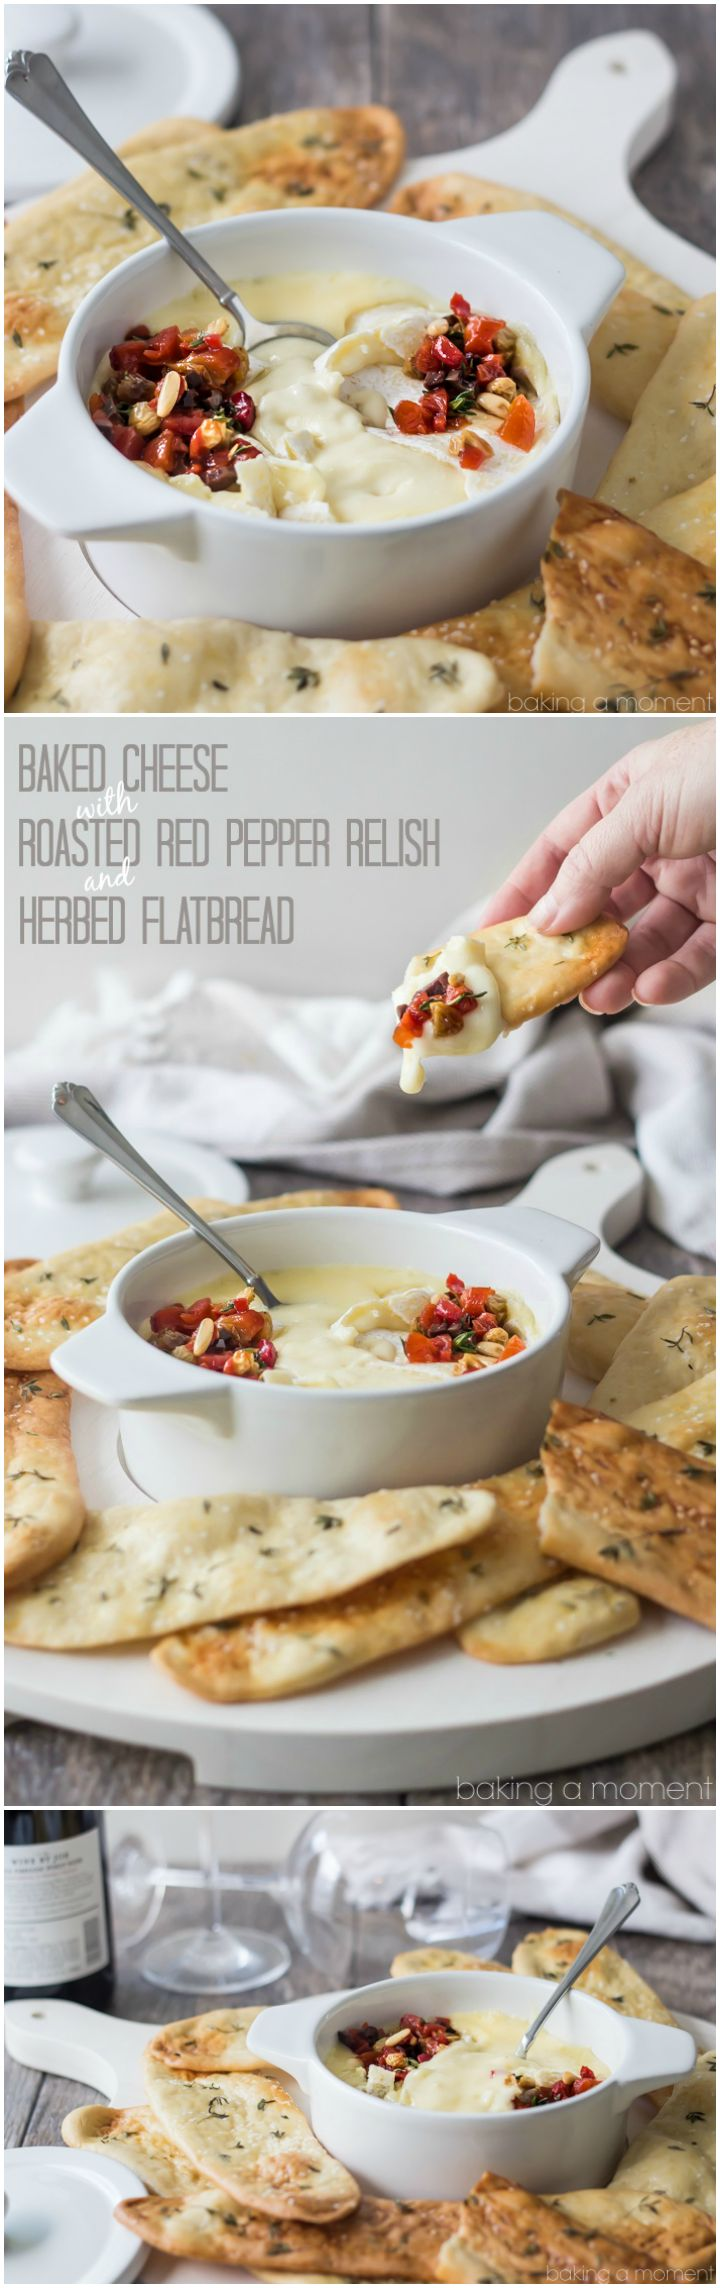 Serve this simple appetizer at your next get-together! The baked cheese is so creamy, and couldn't be simpler to make, and the roasted red pepper relish has tons of smoky-sweet flavor! Scoop it all up with crunchy homemade herbed flatbreads. @marthastewart @macys #marthastewartcollection #mscollection